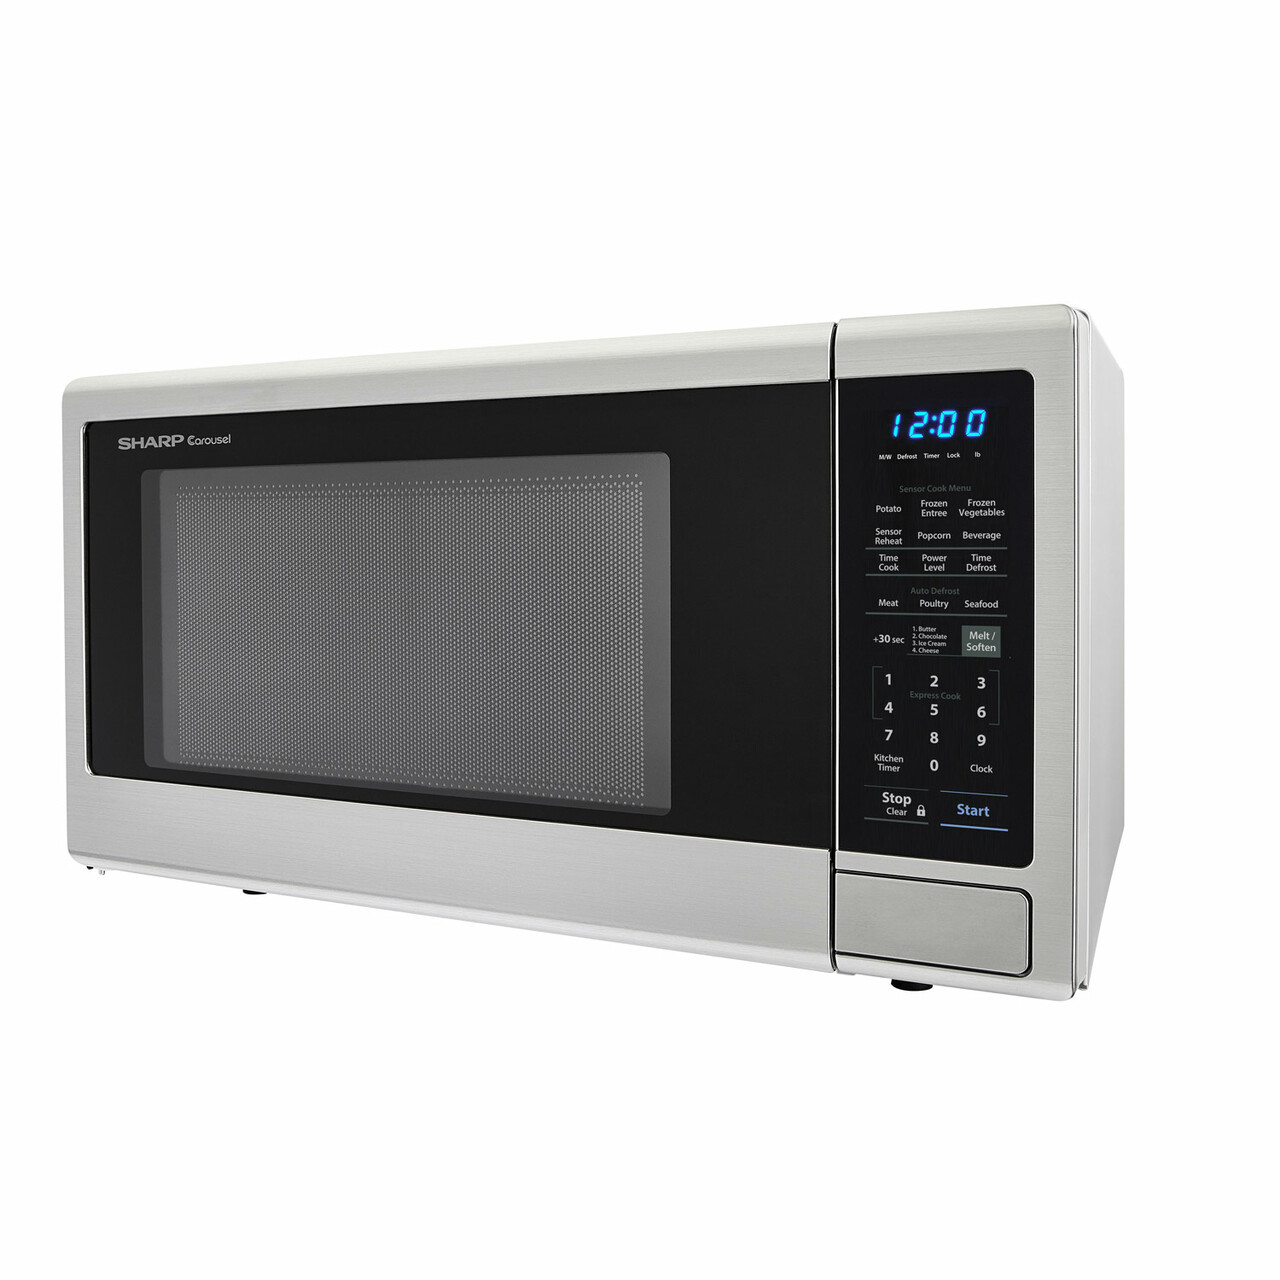 1.8 cu. ft. Sharp Stainless Steel  Countertop Microwave (SMC1842CS) – left side view